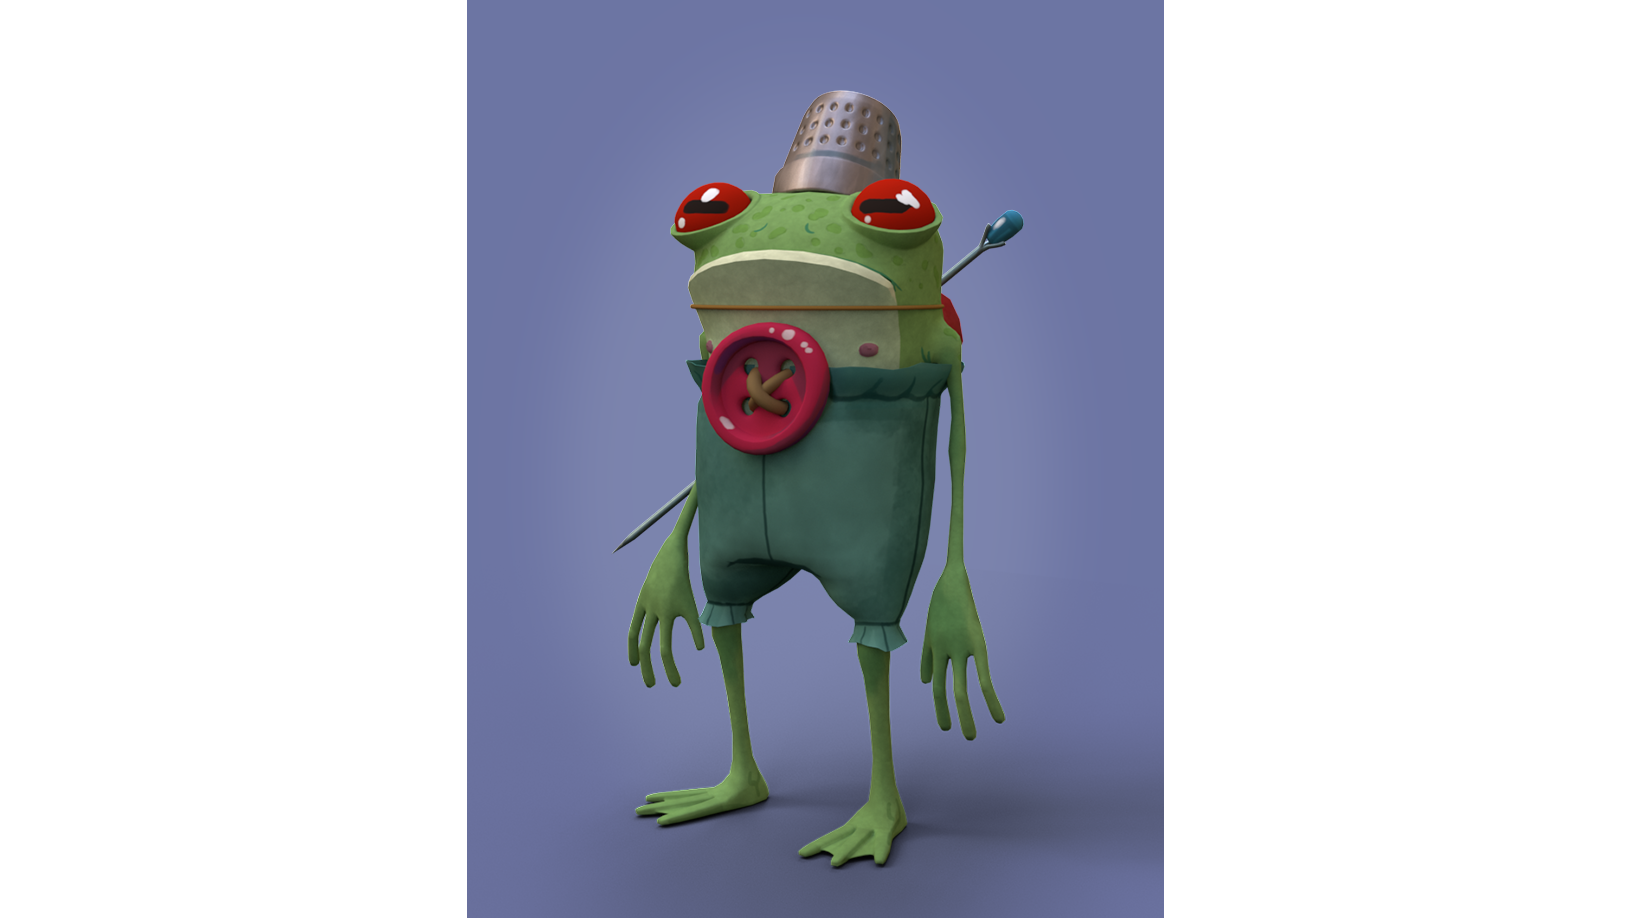 A design of a frog based on concept art.